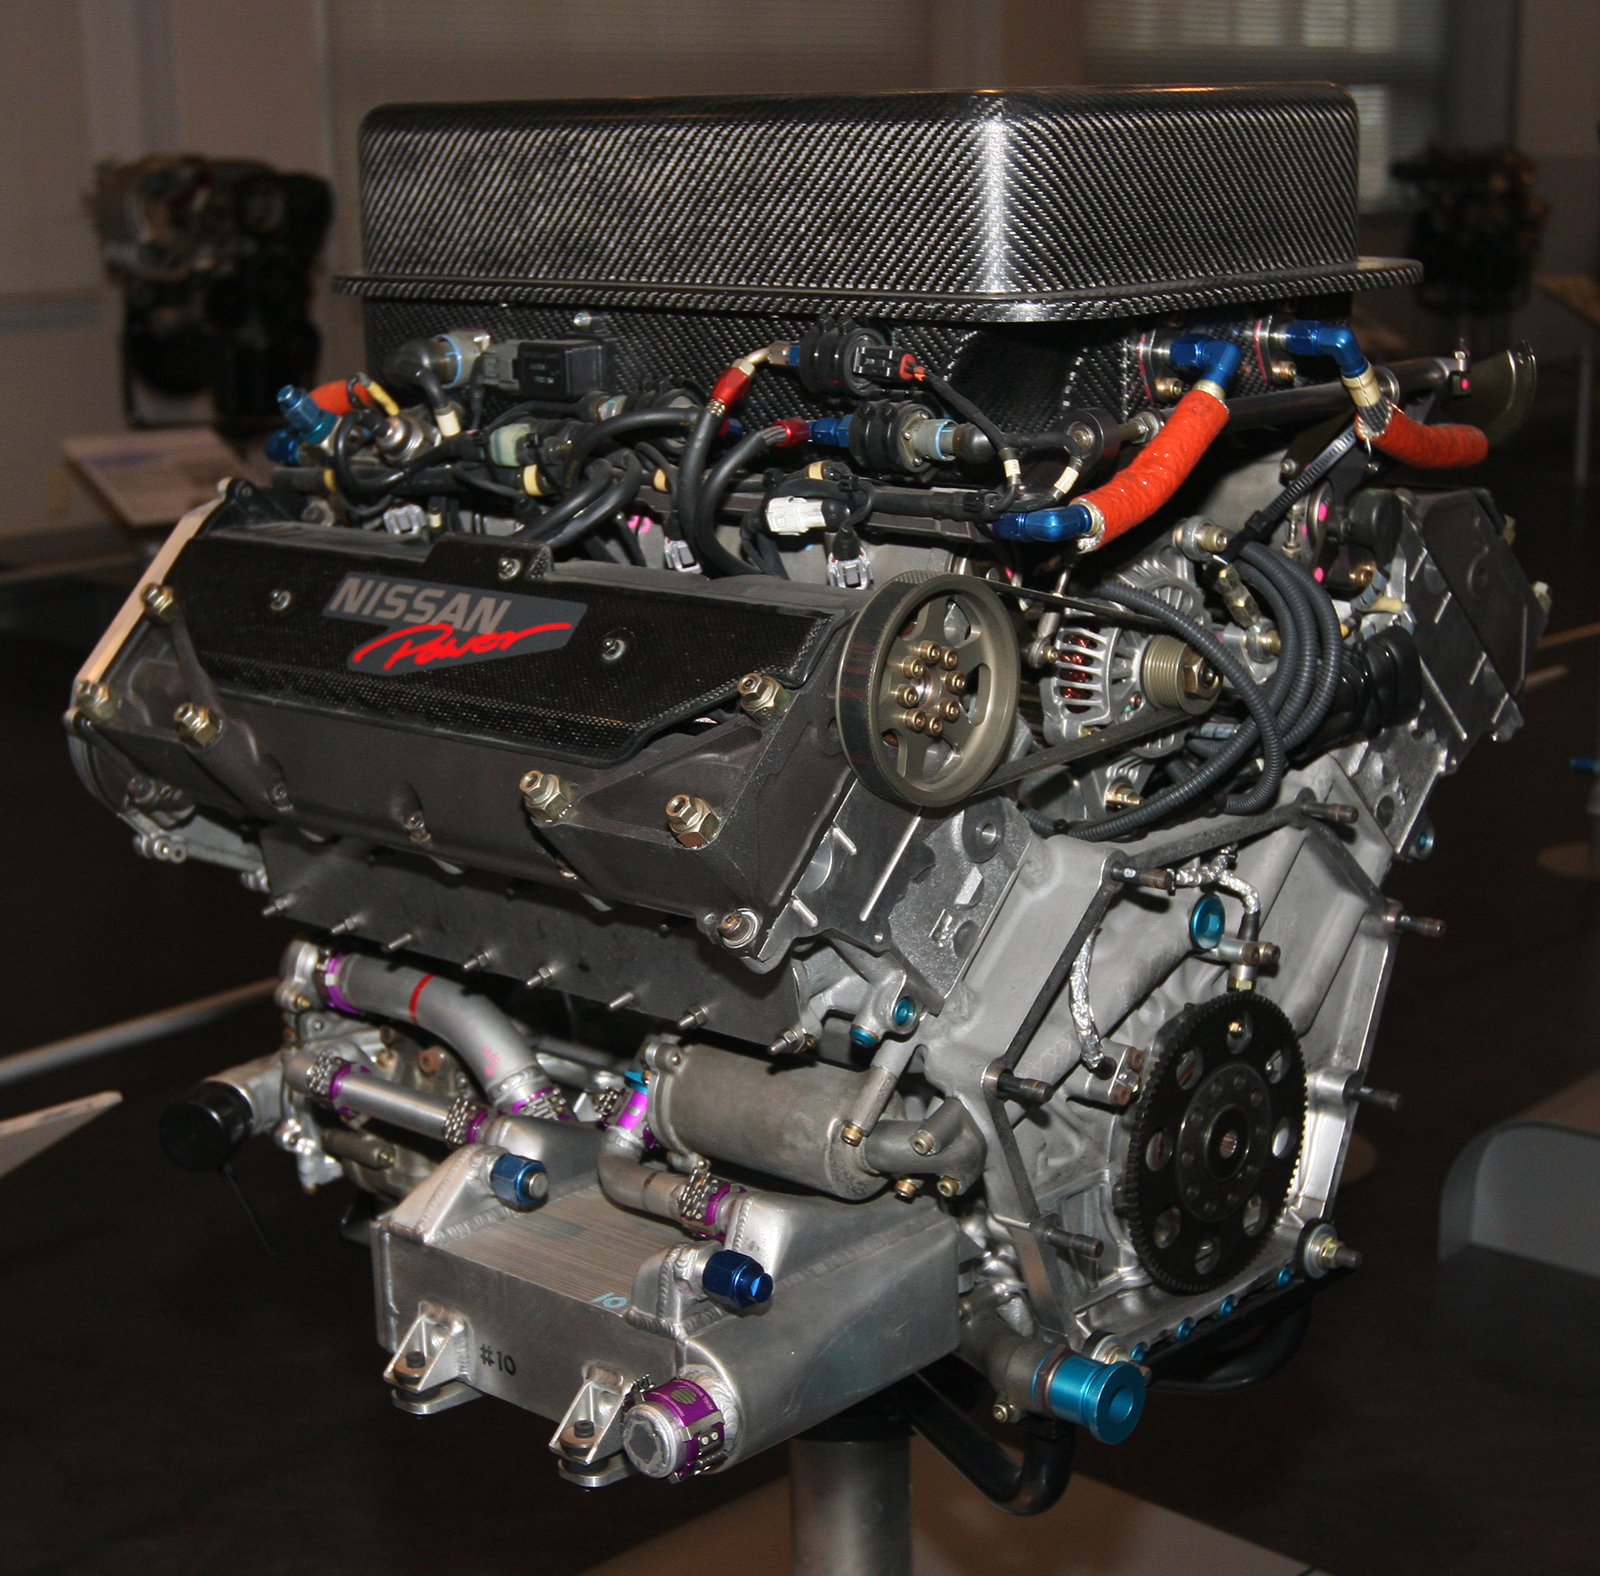 Nissan_VRH50A_engine_rear_Nissan_Engine_Museum.jpg